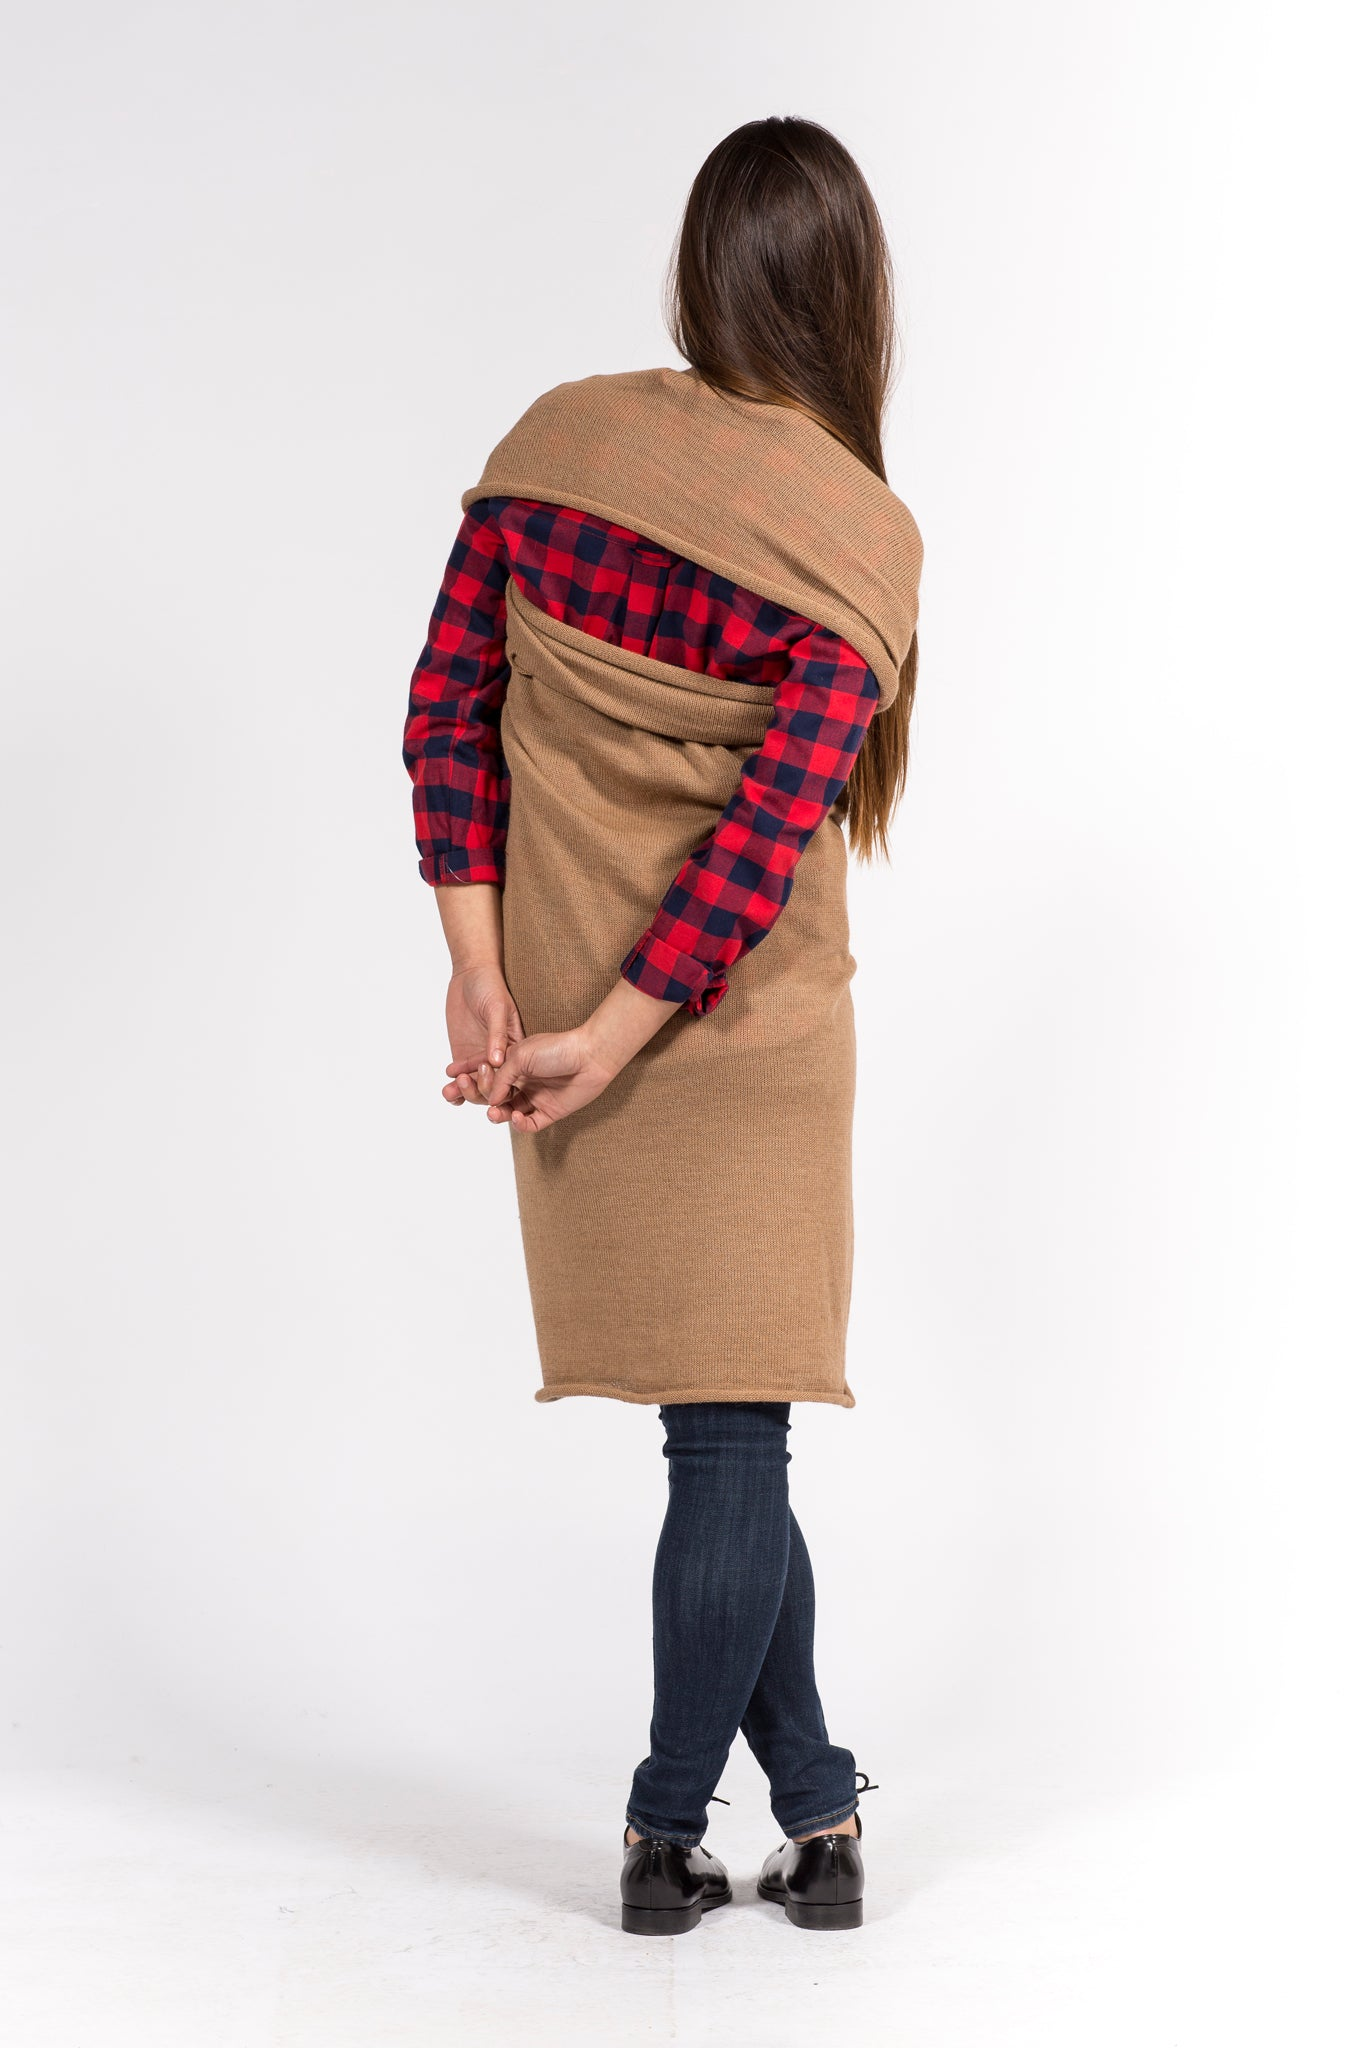 camel dress in baby alpaca wool